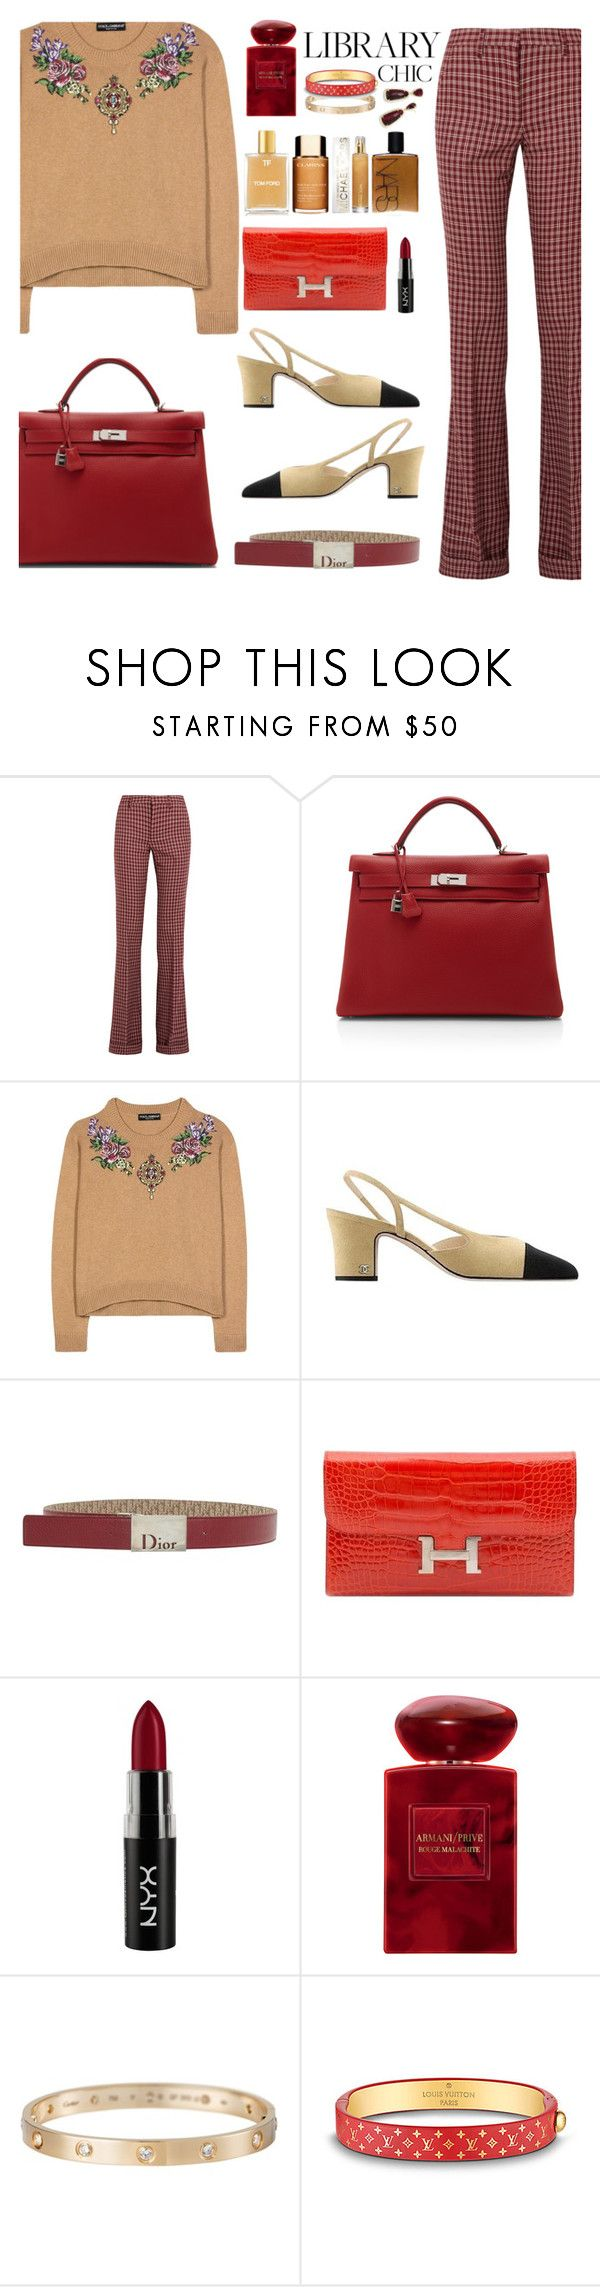 """Untitled #21"" by maraihp ❤ liked on Polyvore featuring Miu Miu, Hermès, Dolce&Gabbana, Chanel, Christian Dior, NYX, Giorgio Armani, Cartier, Louis Vuitton and Kendra Scott"